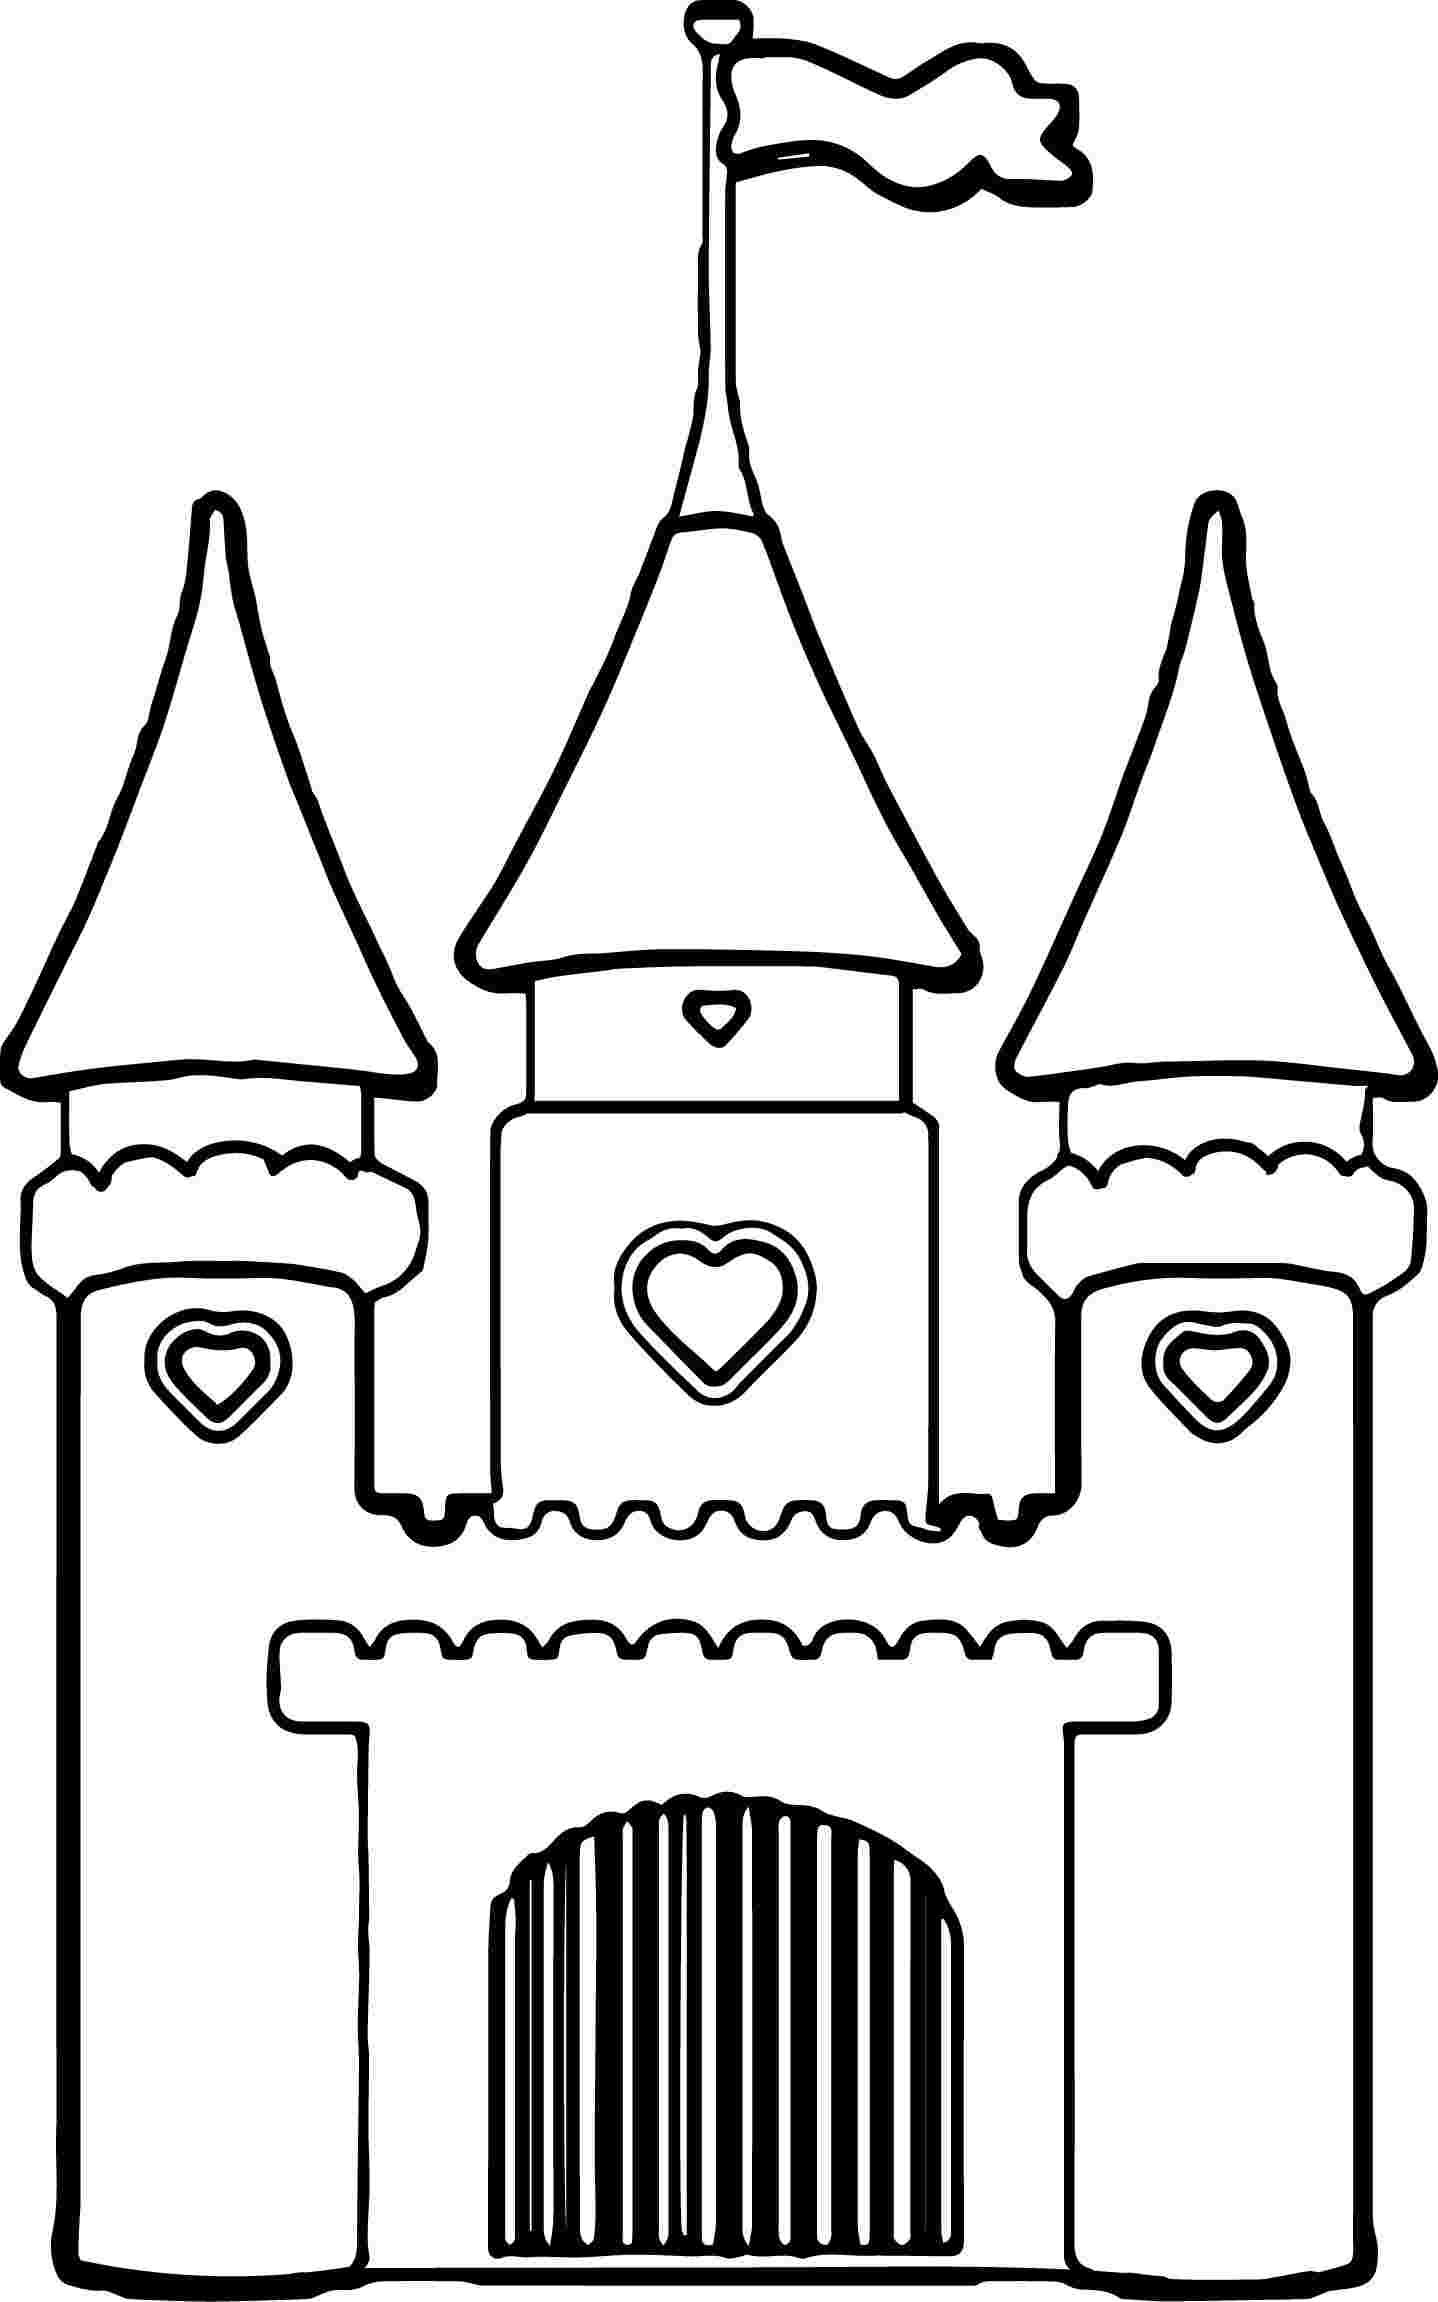 Google Image Result For Https Huangfei Info Wp Content Uploads 2020 01 Coloring Pages Cas Castle Coloring Page Princess Coloring Pages Disney Princess Castle